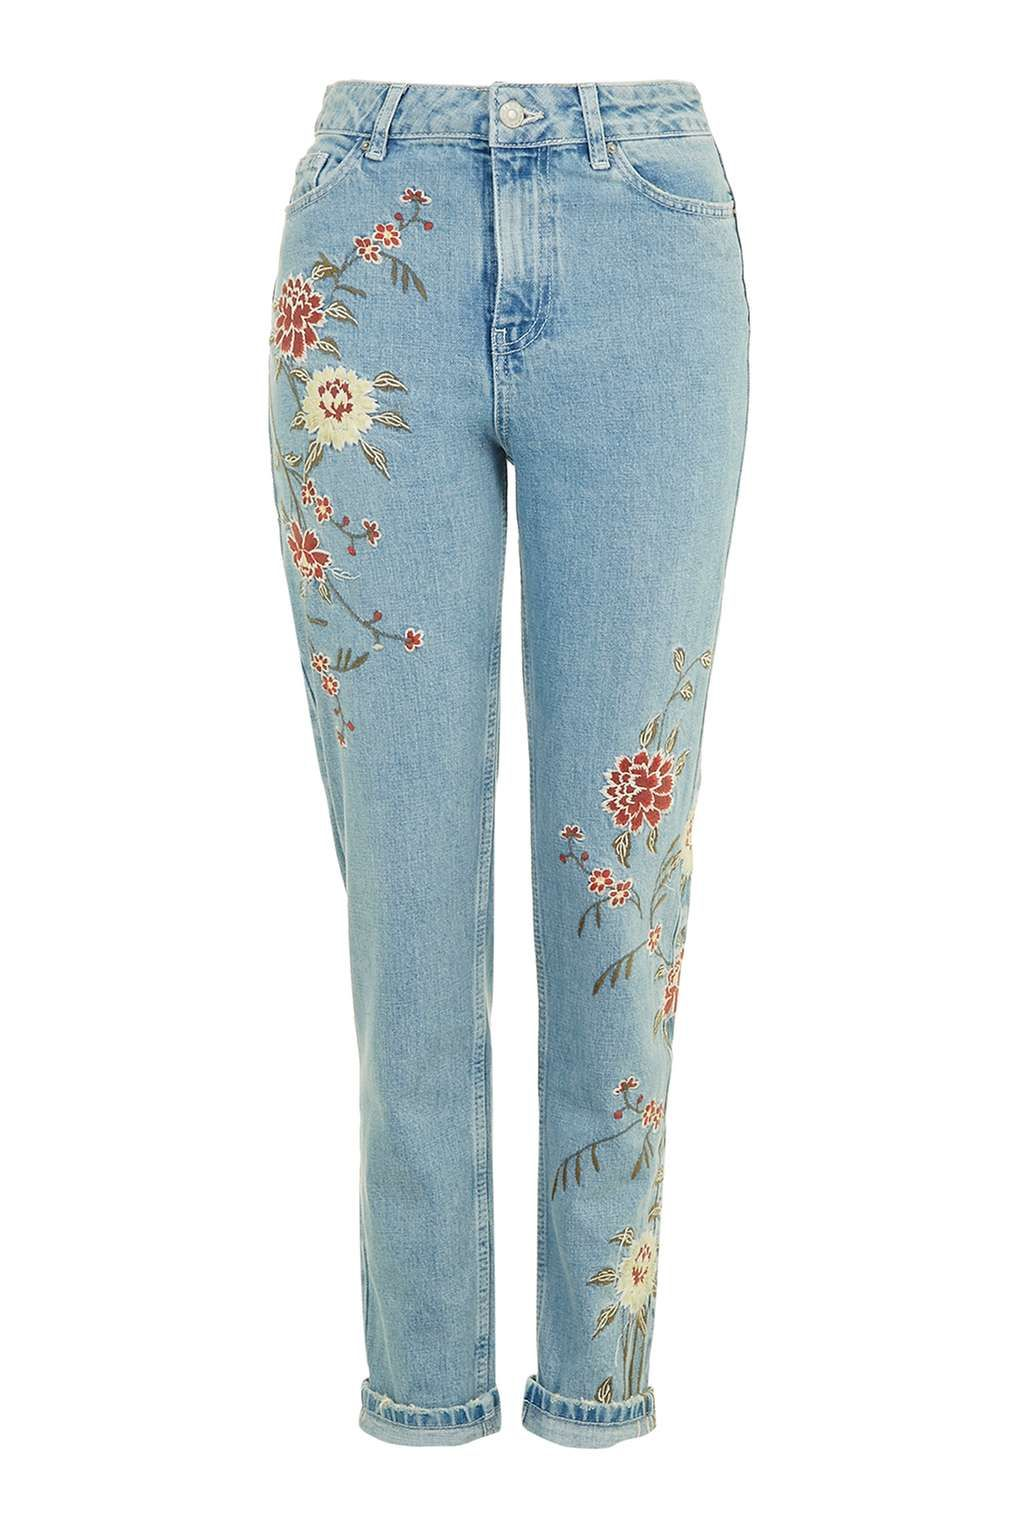 MOTO Floral Embroidered Mom Jeans - New In Fashion - New In